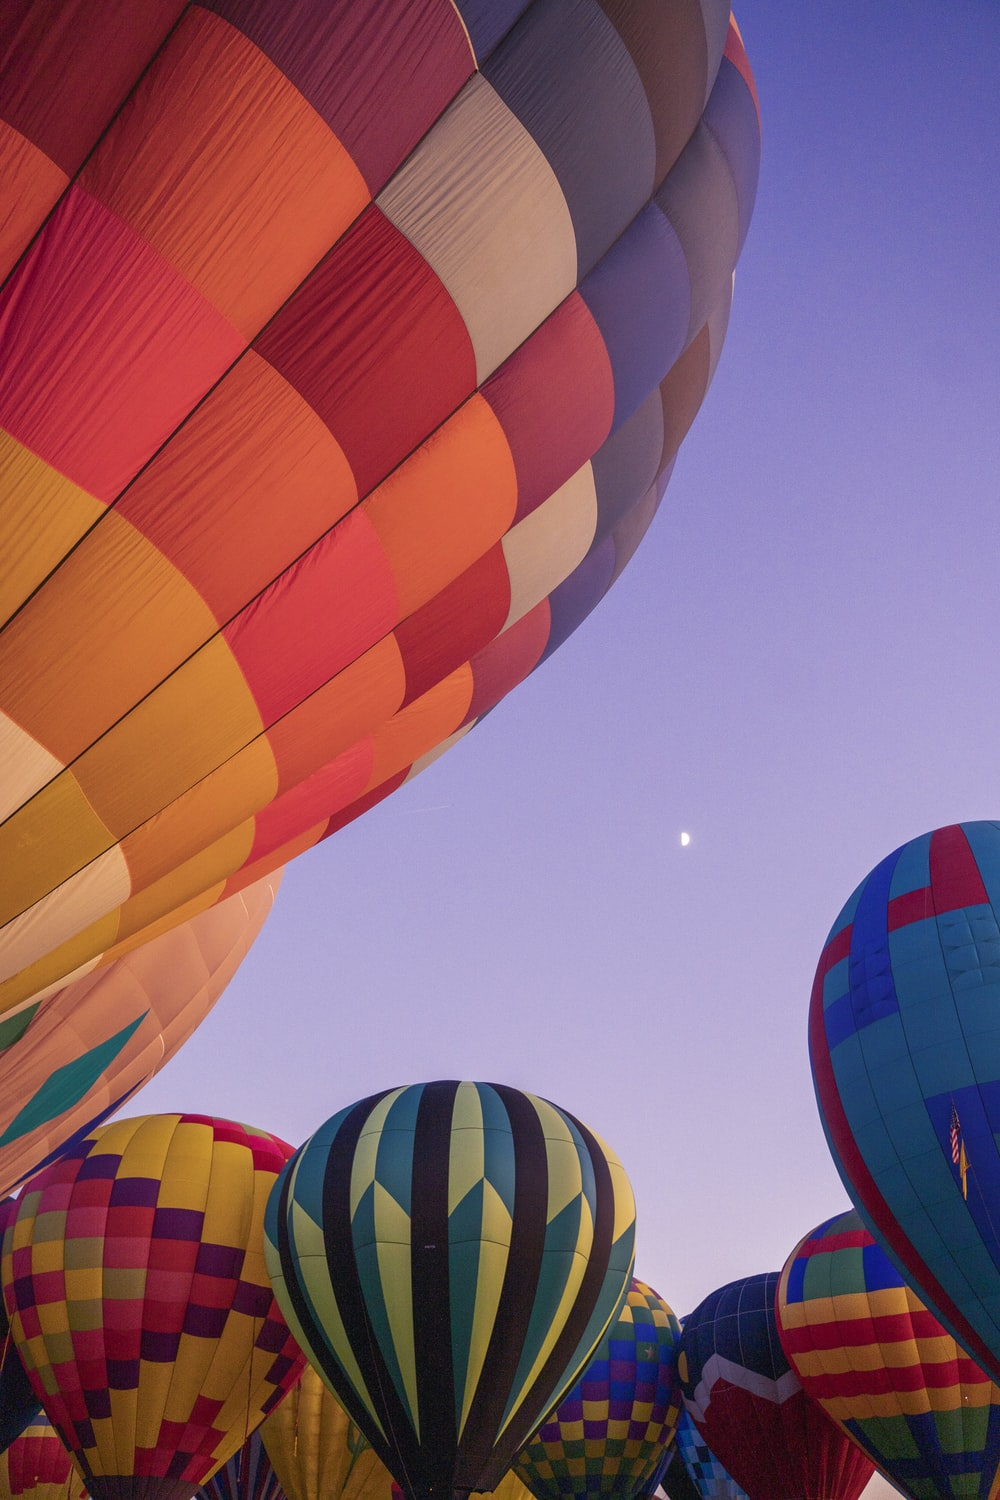 assoted-color of hot air balloons